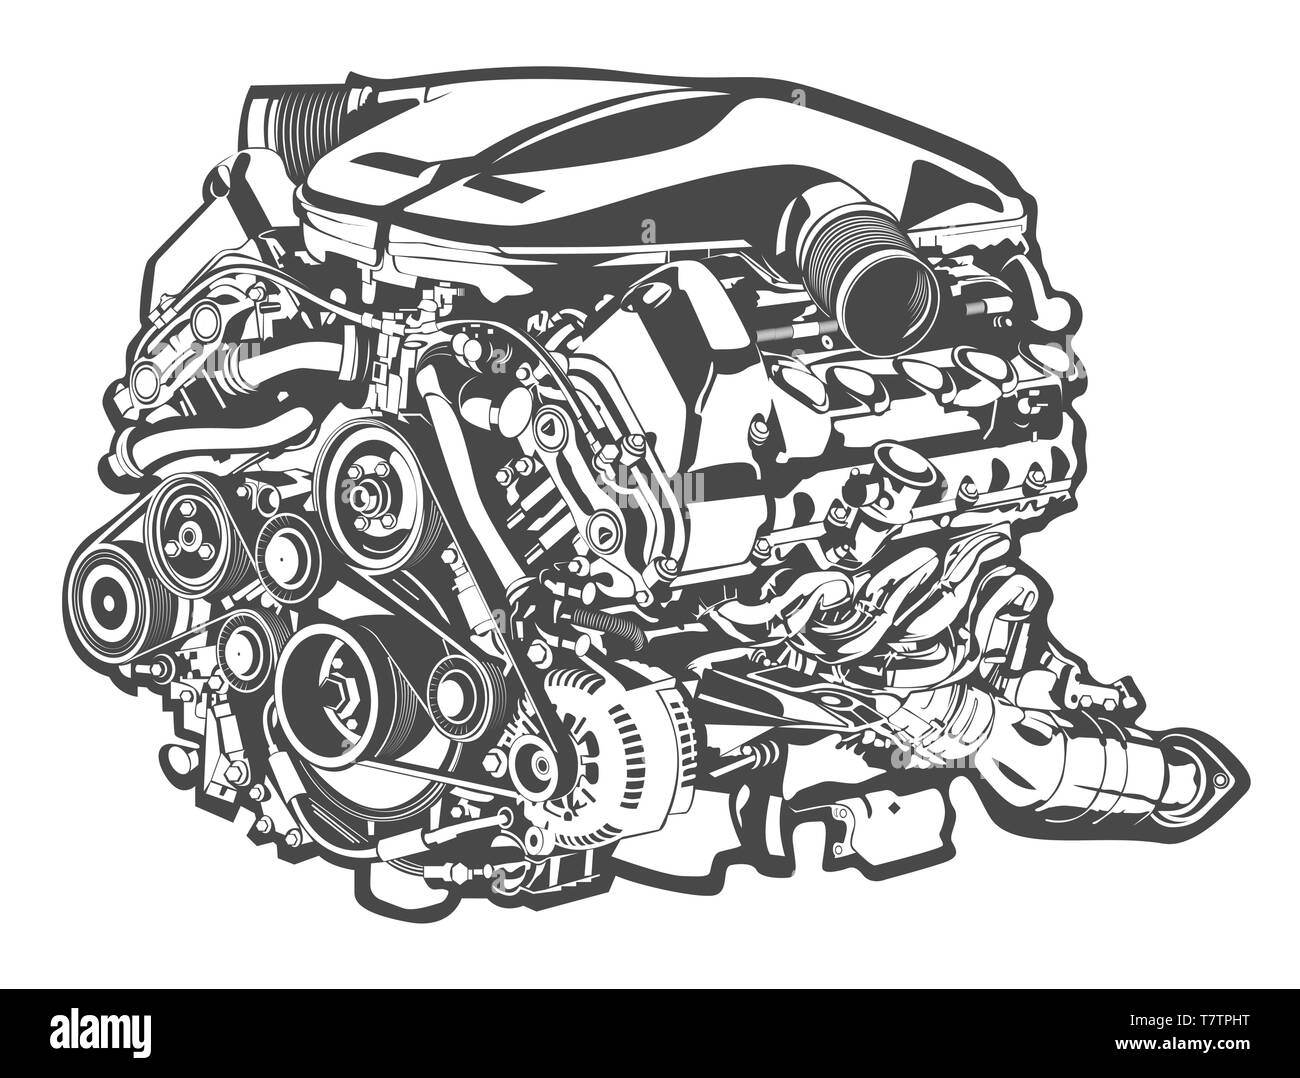 vector high detailed illustration of car engine - Stock Vector